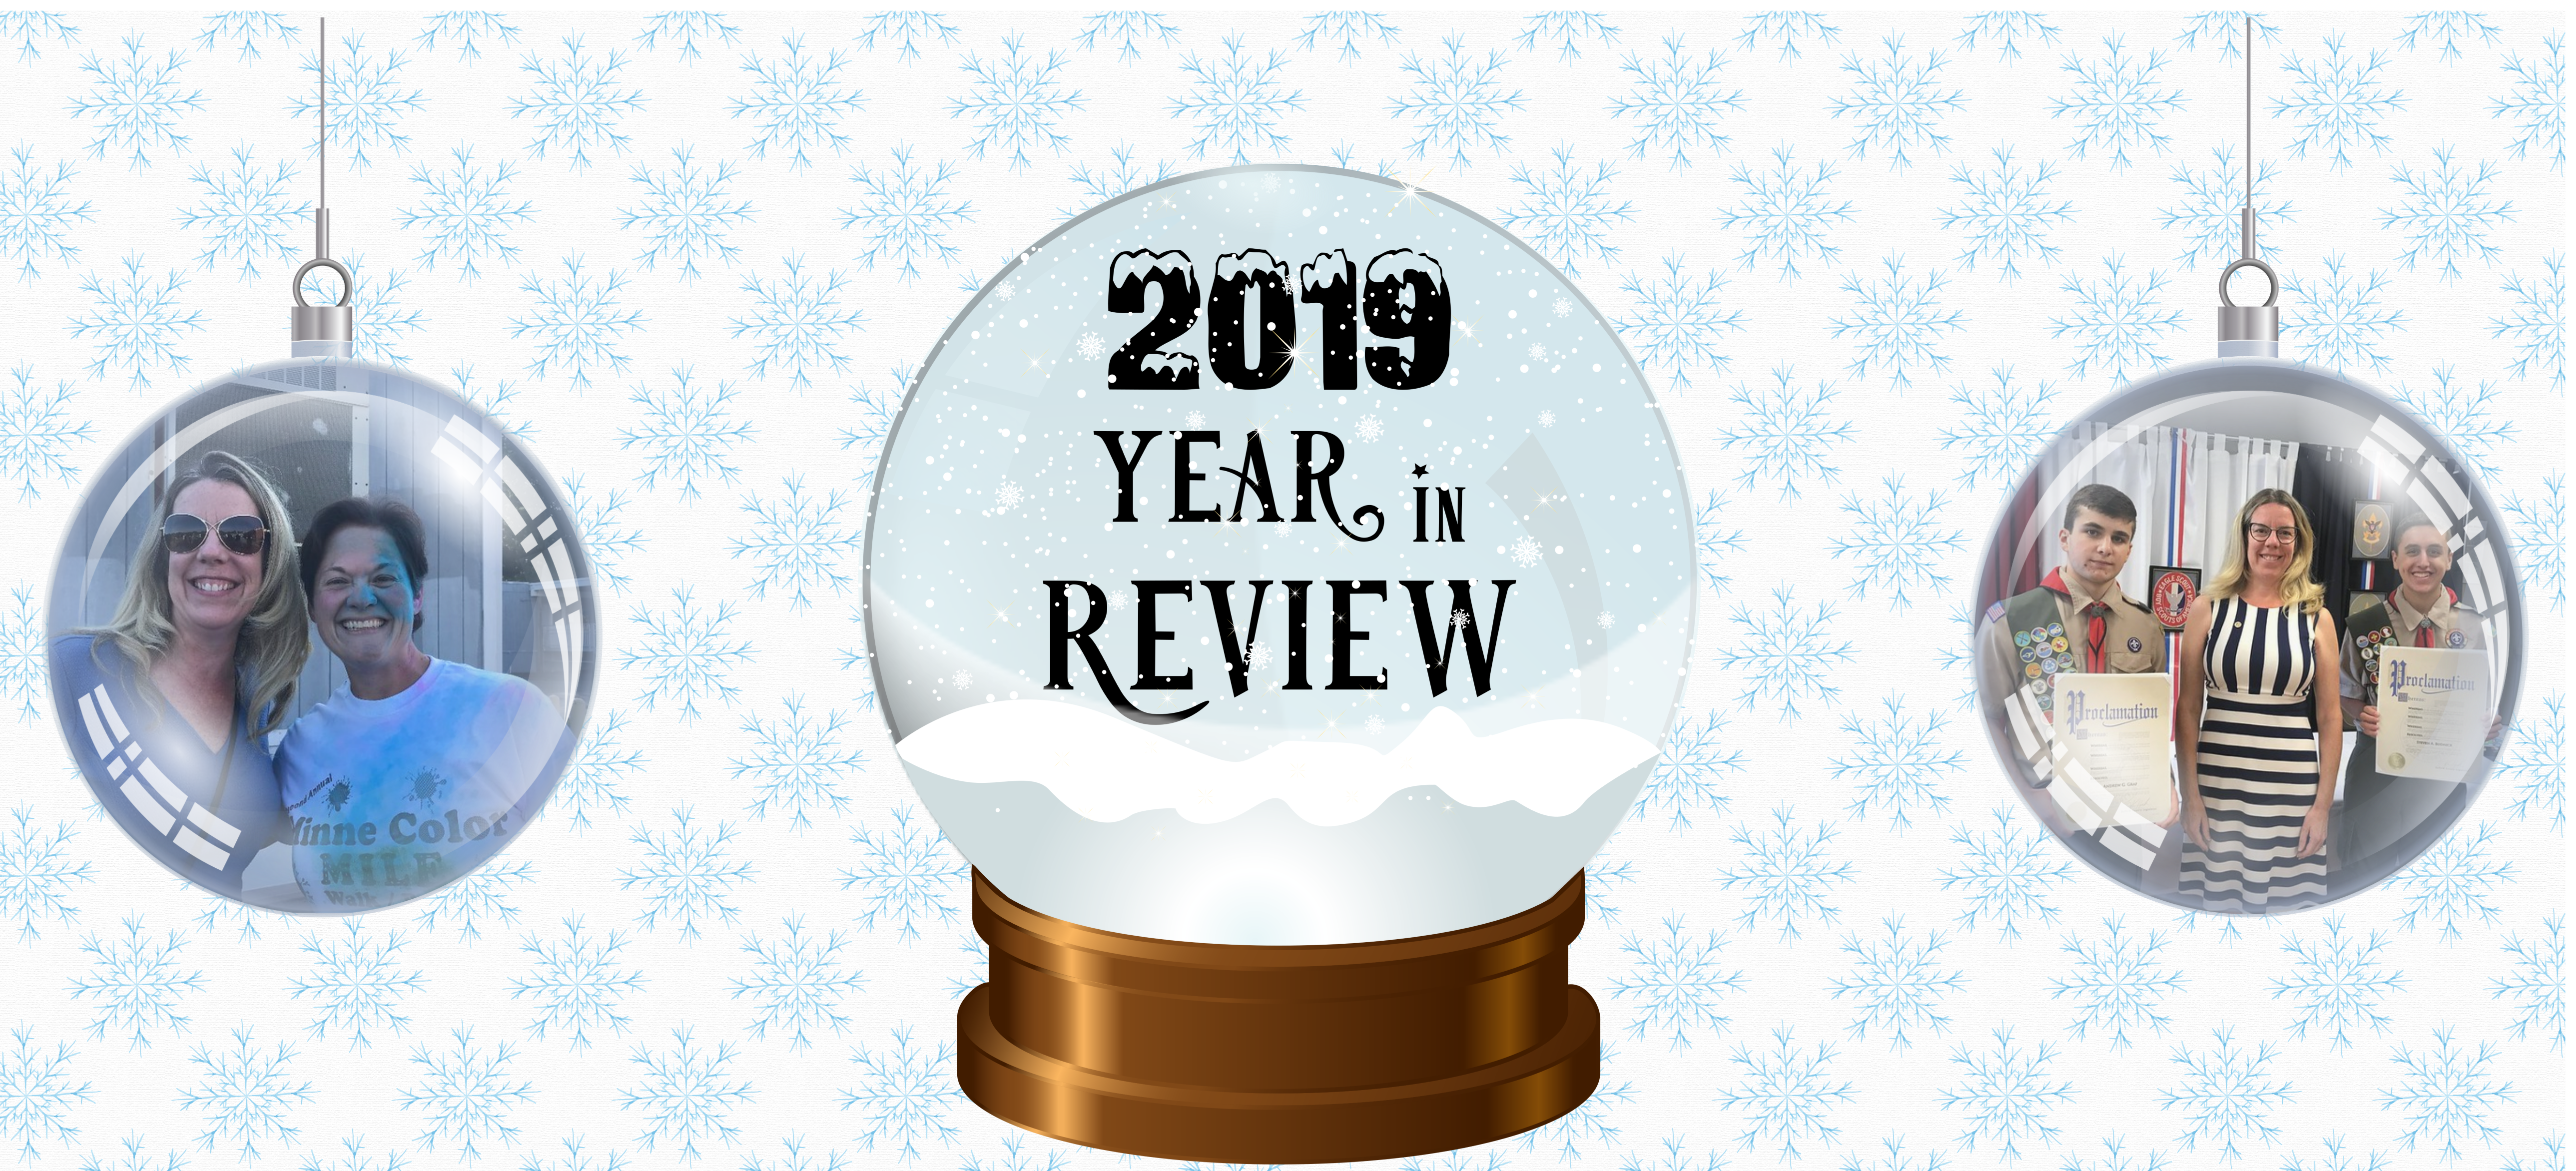 Year in Review Banner 1